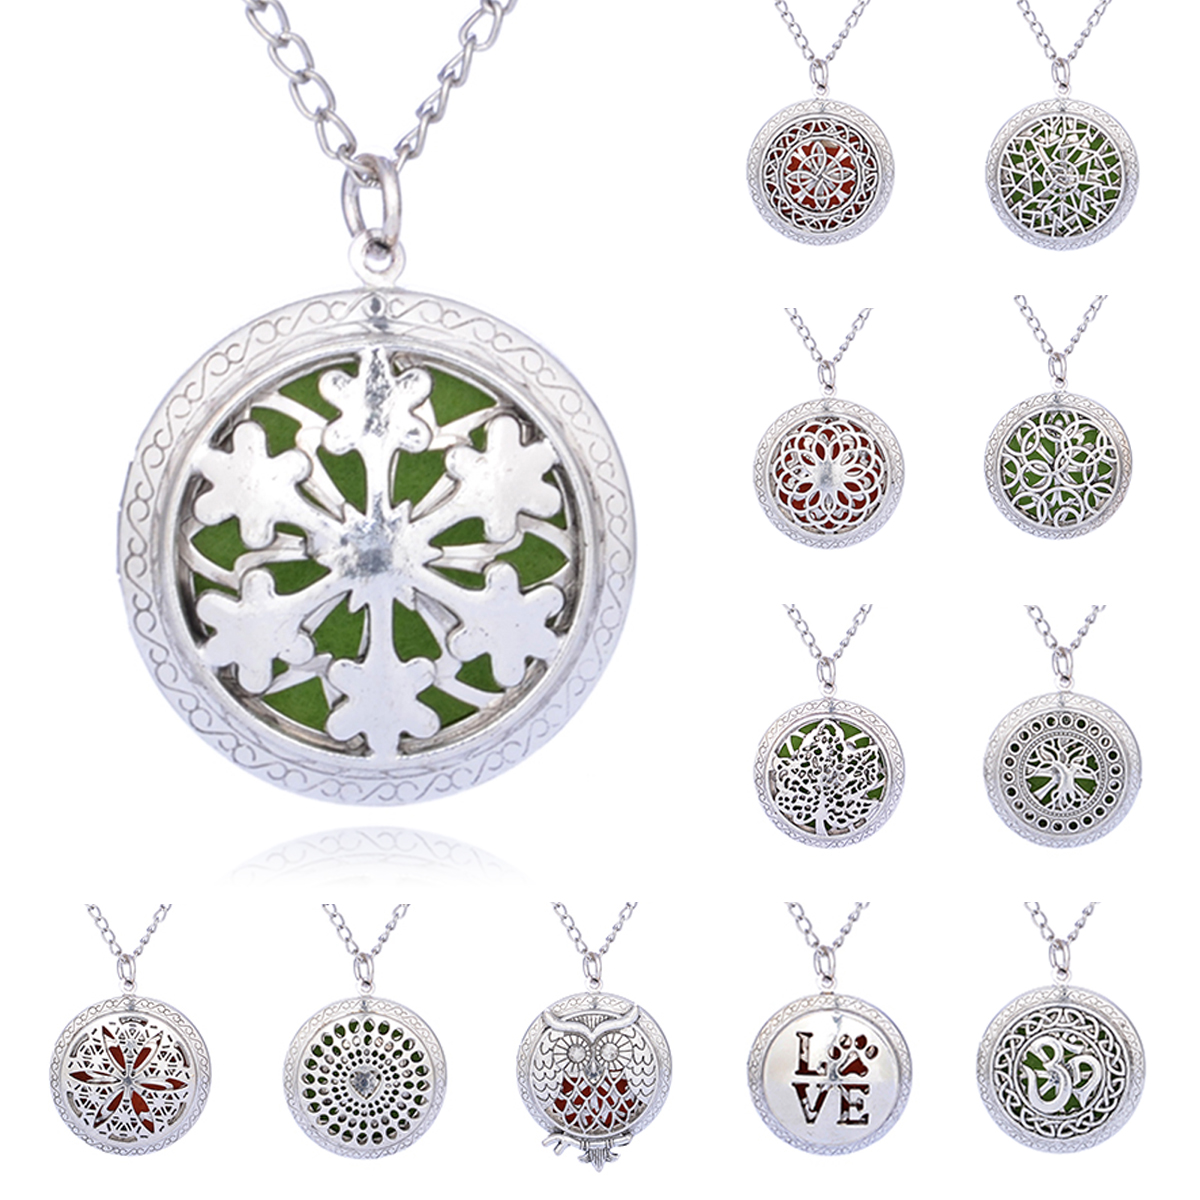 Vintage Aromatherapy Open Locket Necklace Silver Plated Hollow Round Pendant With Pads Oil Essential Diffuser Pendant Necklace(China (Mainland))